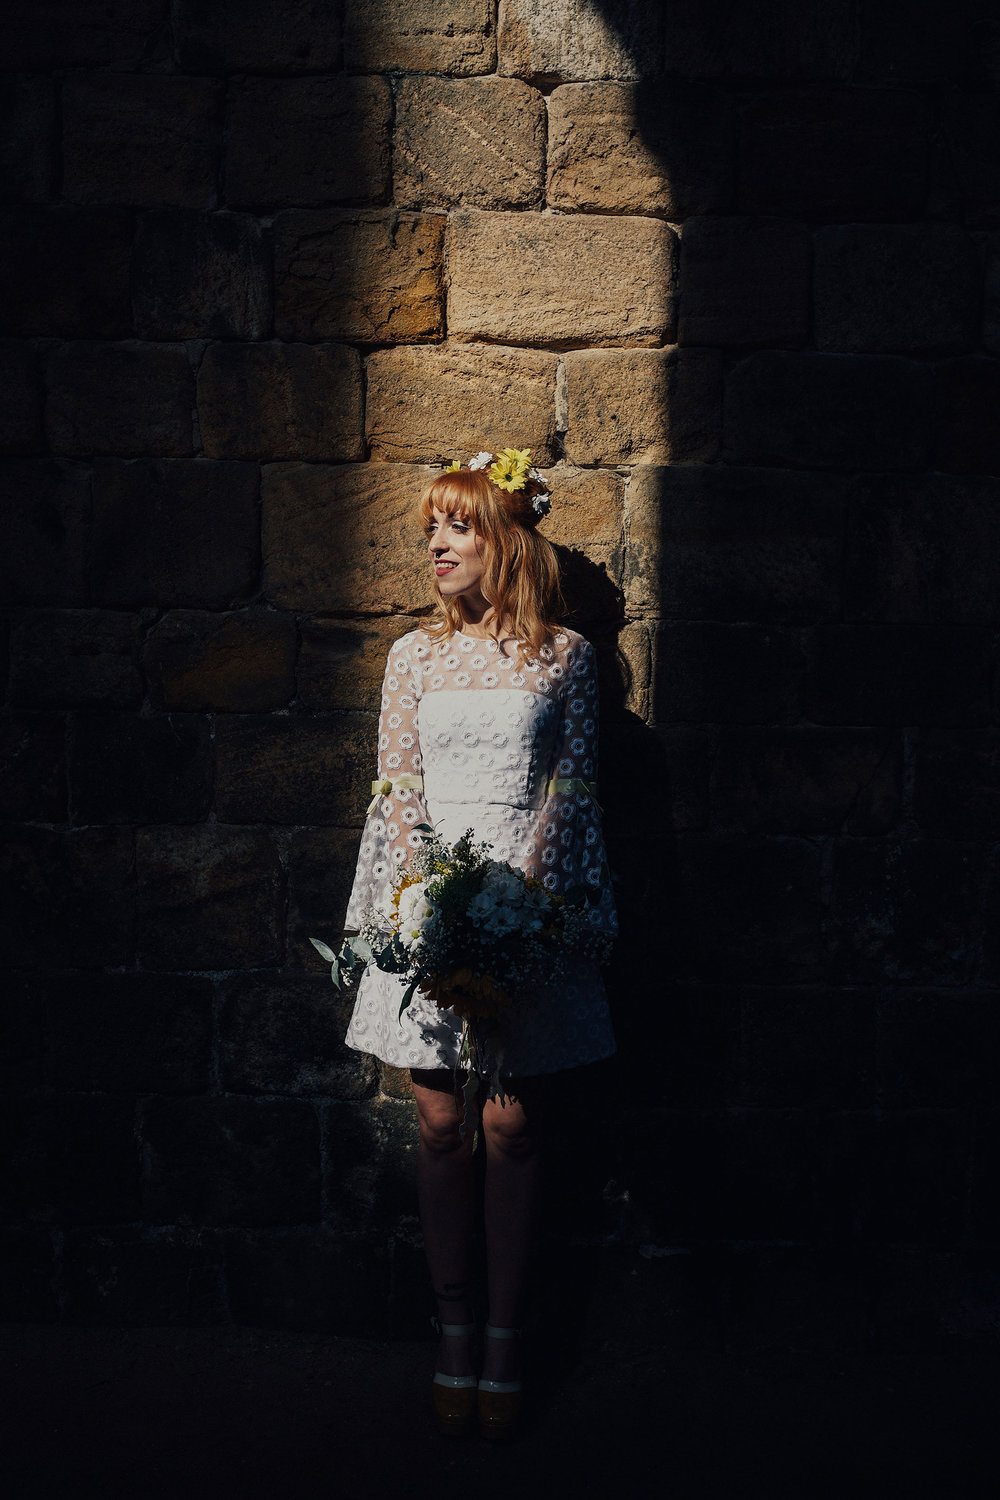 PJ_PHILLIPS_PHOTOGRAPHY_ALTERNATIVE_WEDDING_PHOTOGRAPHY_GLASGOW_YORKSHIRE_185.jpg